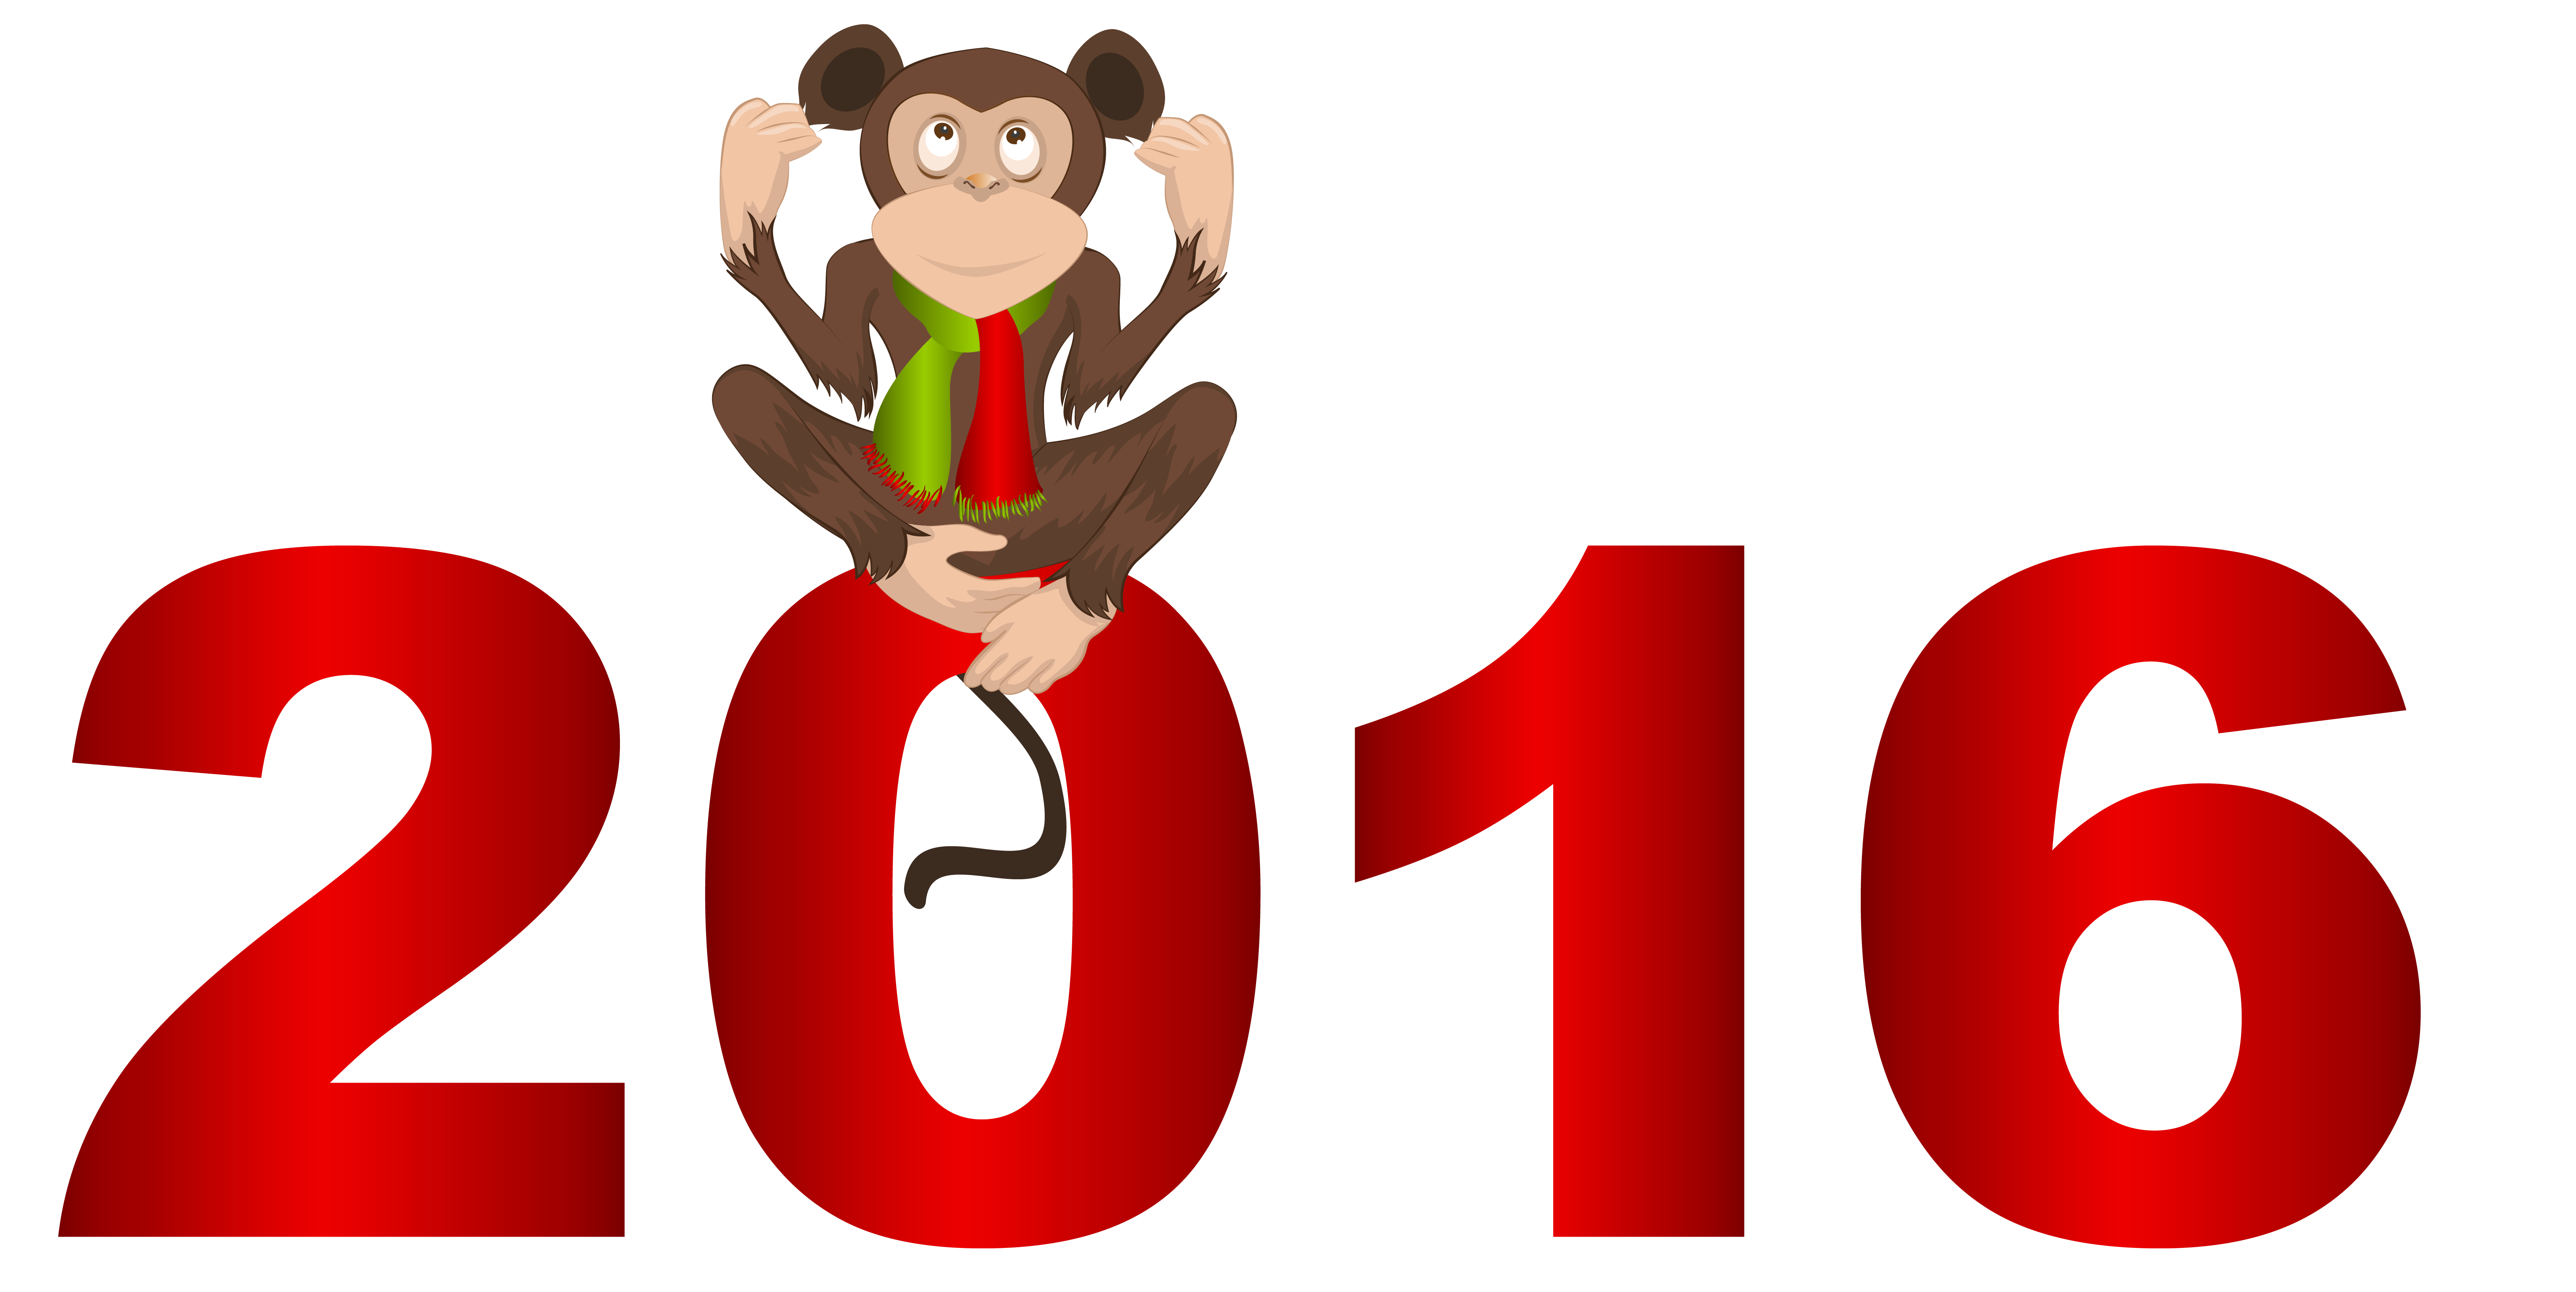 clip royalty free download  with png image. Years clipart monkey 2016